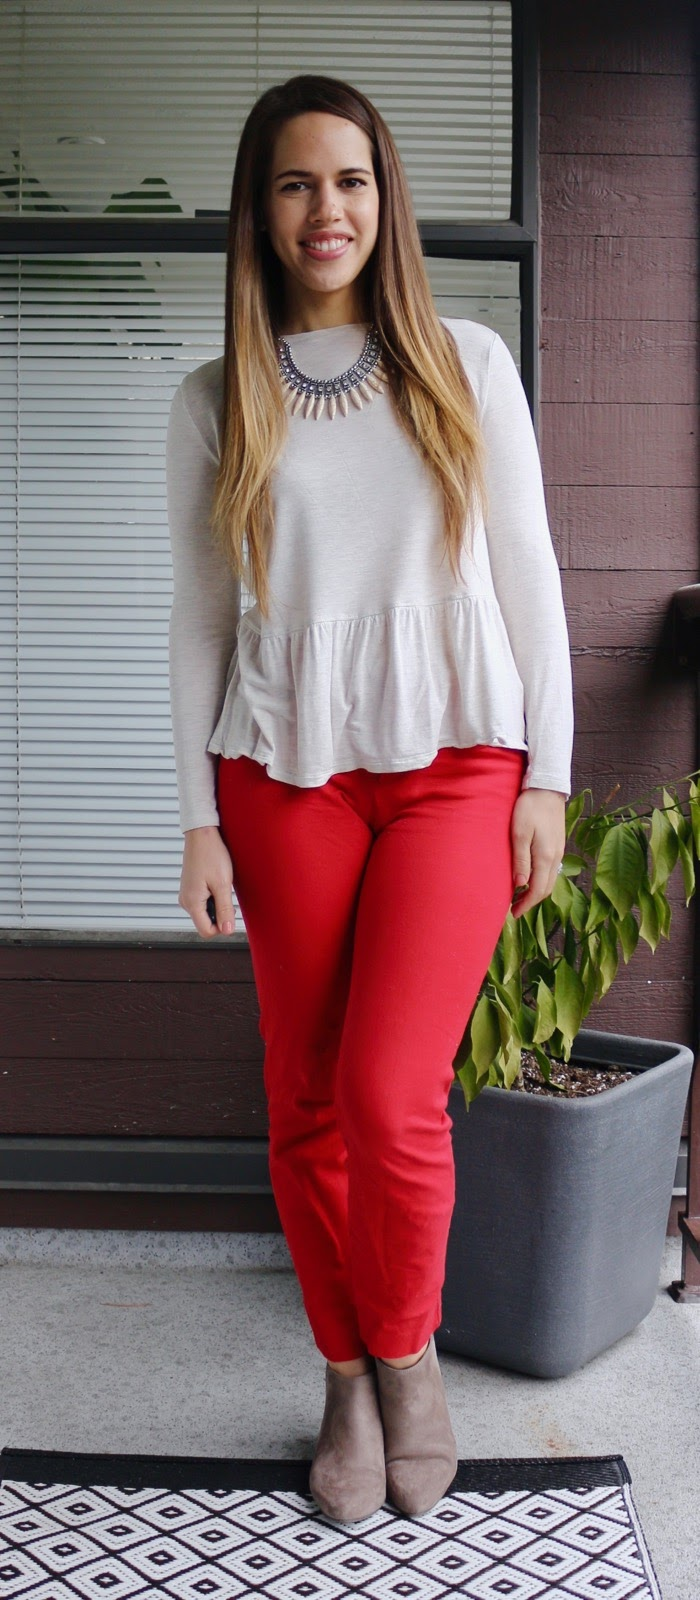 Jules in Flats - Peplum Top and Red Ankle Pants for Work